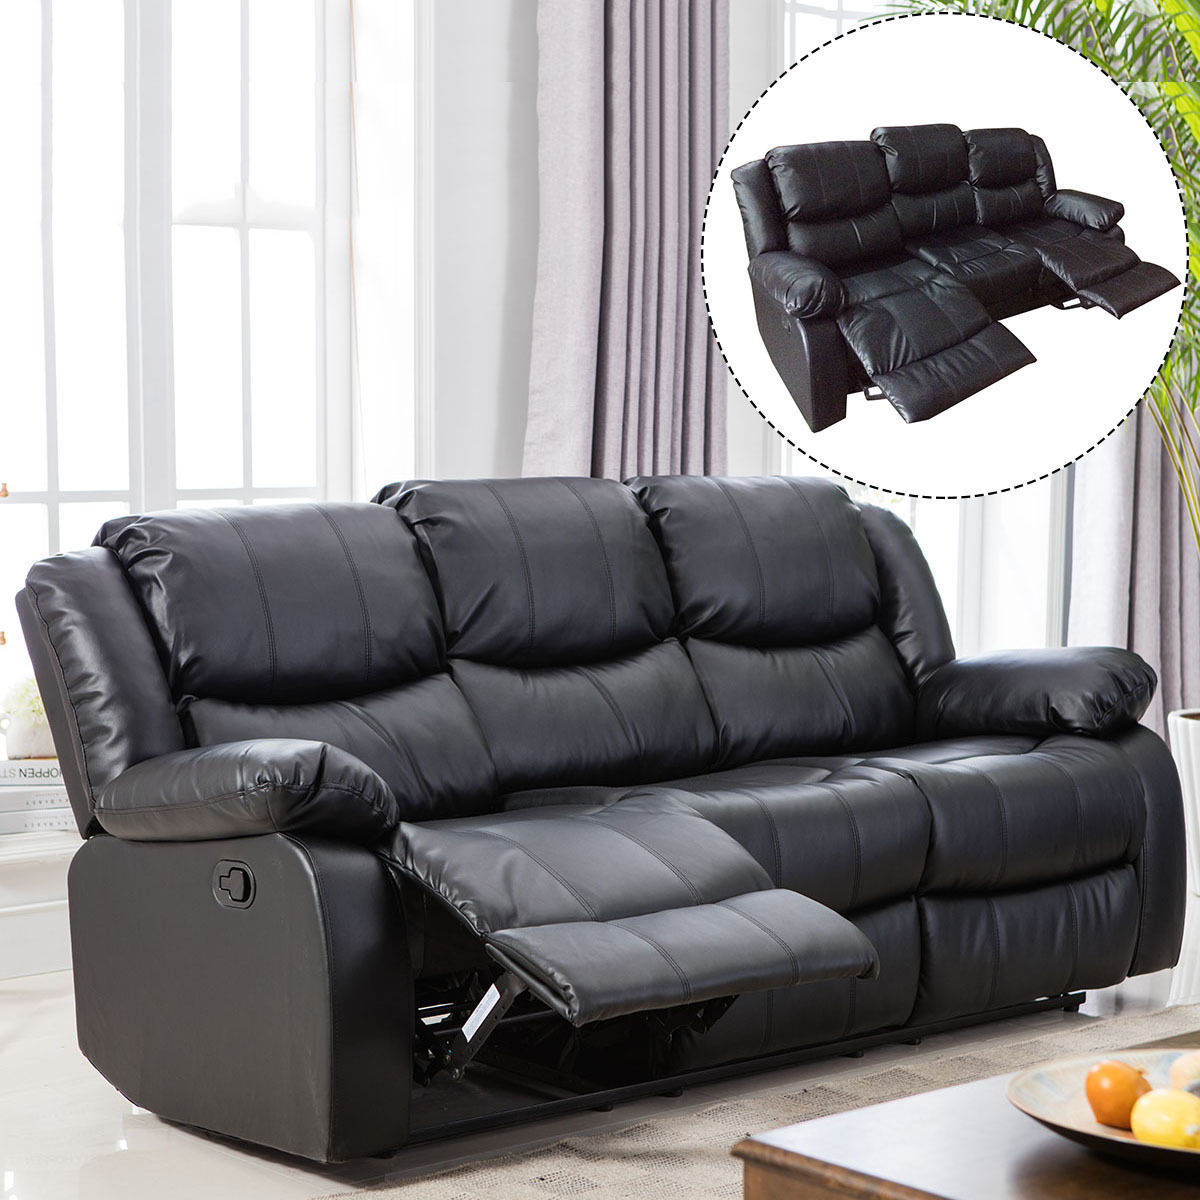 Costway Black Motion Sofa Loveseat Recliner Living Room Bonded Leather Furniture(3 seat)